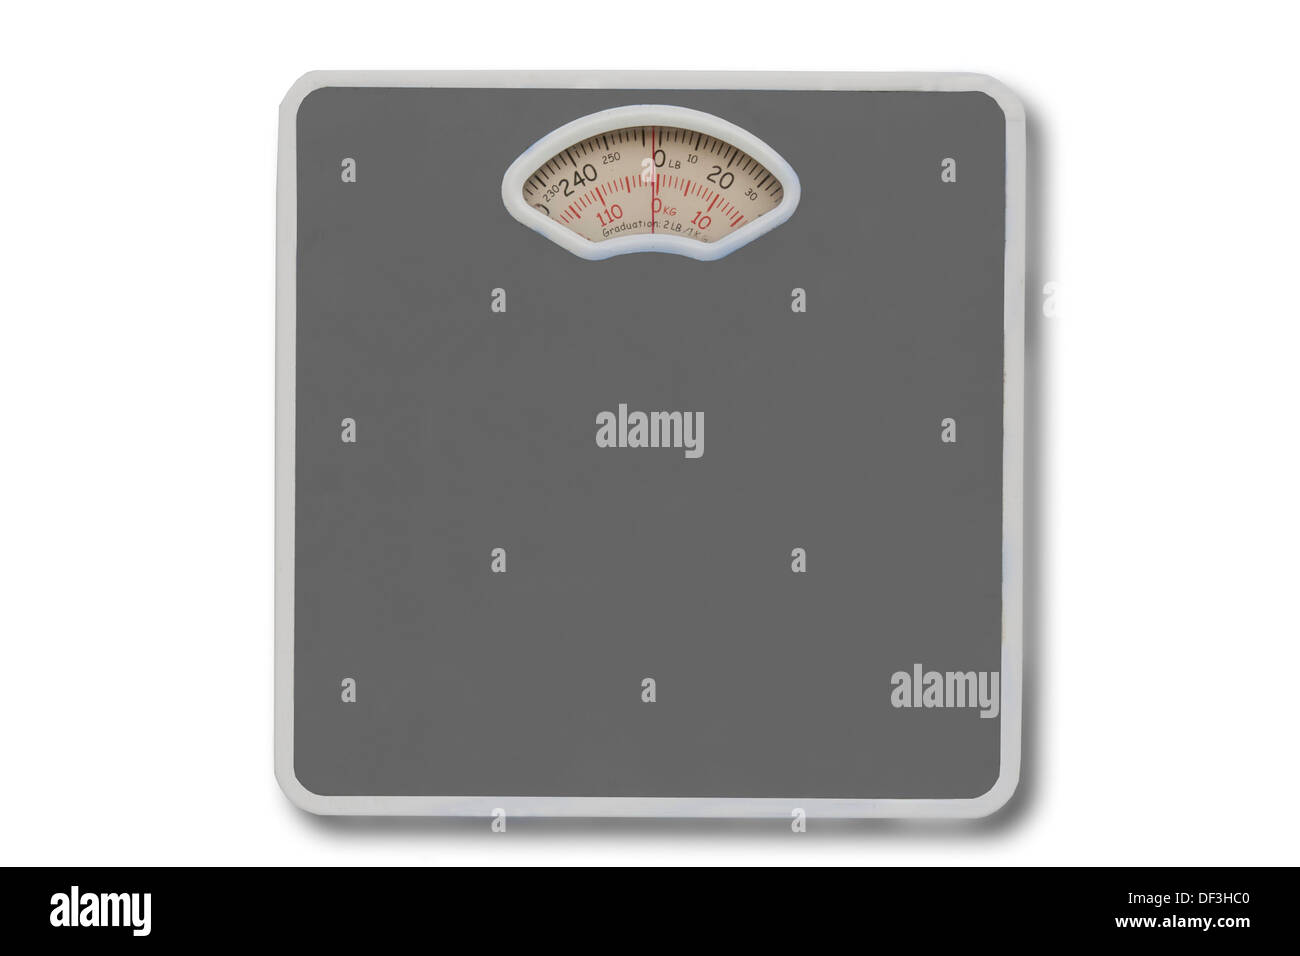 analog analogue background balance bath bathroom black blue calorie care control dial diet dieting exercise fat fit funky health - Stock Image